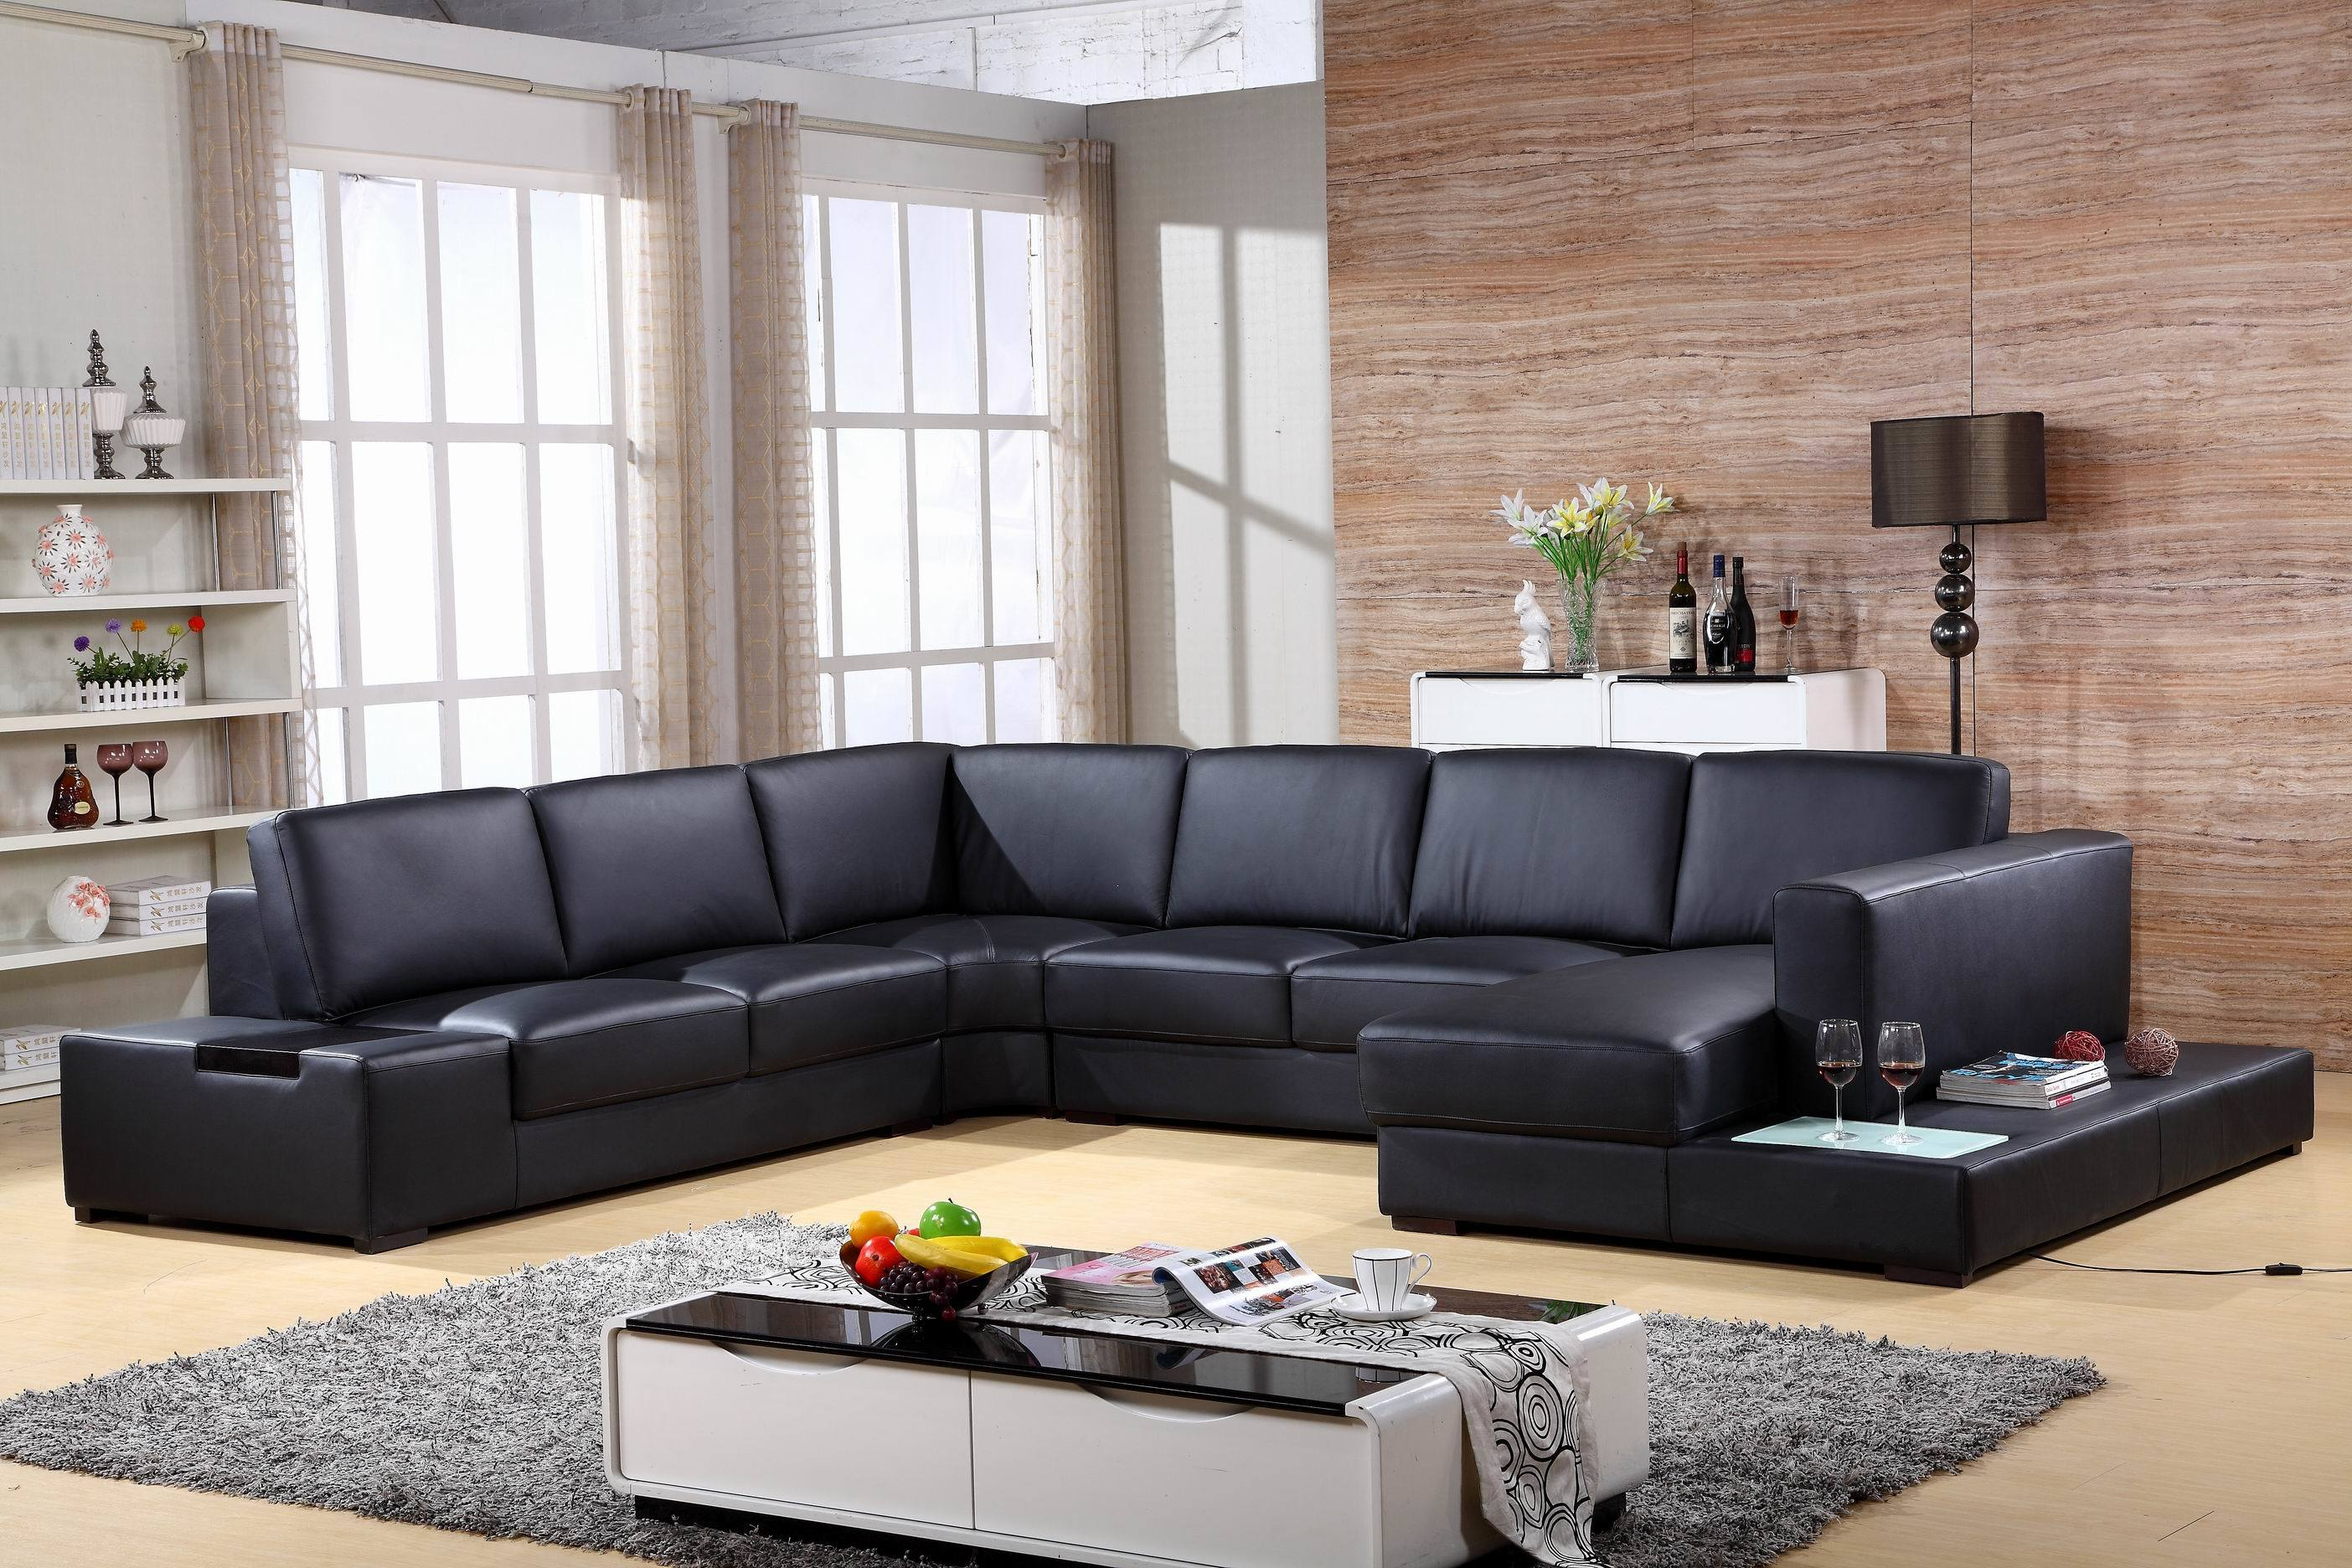 Big Royal Sleeper Couch Home Luxury Classic Led Light 9 Seater Germany Living Room Leisure Chair Combination Sofas L U Shape Real Leather Corner Sectional Sofa China Leisure Sofa Sofa